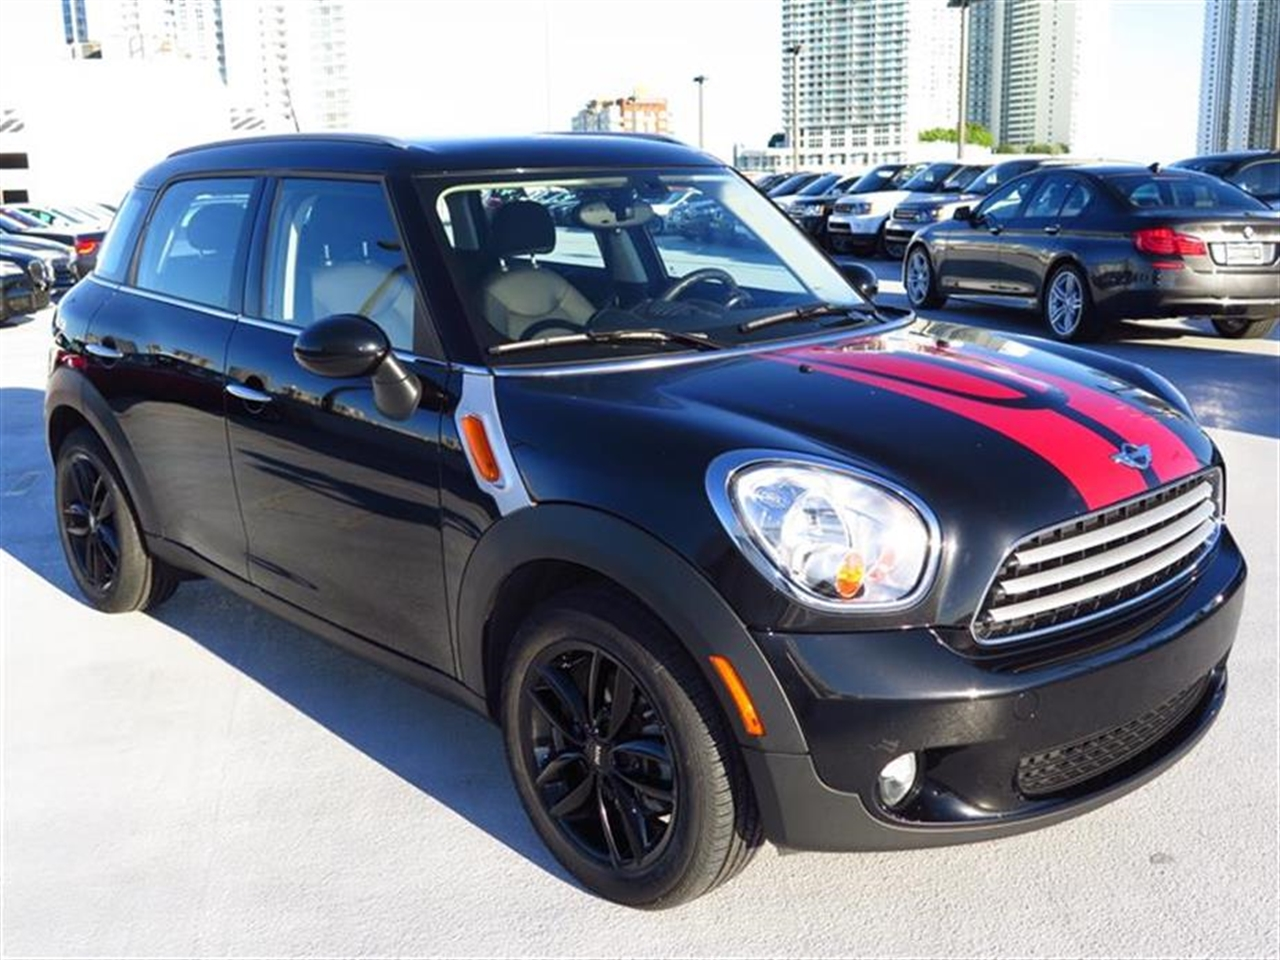 2013 MINI COOPER COUNTRYMAN FWD 4dr 31533 miles 2 front cup holders 3 12V pwr outlets 3 re